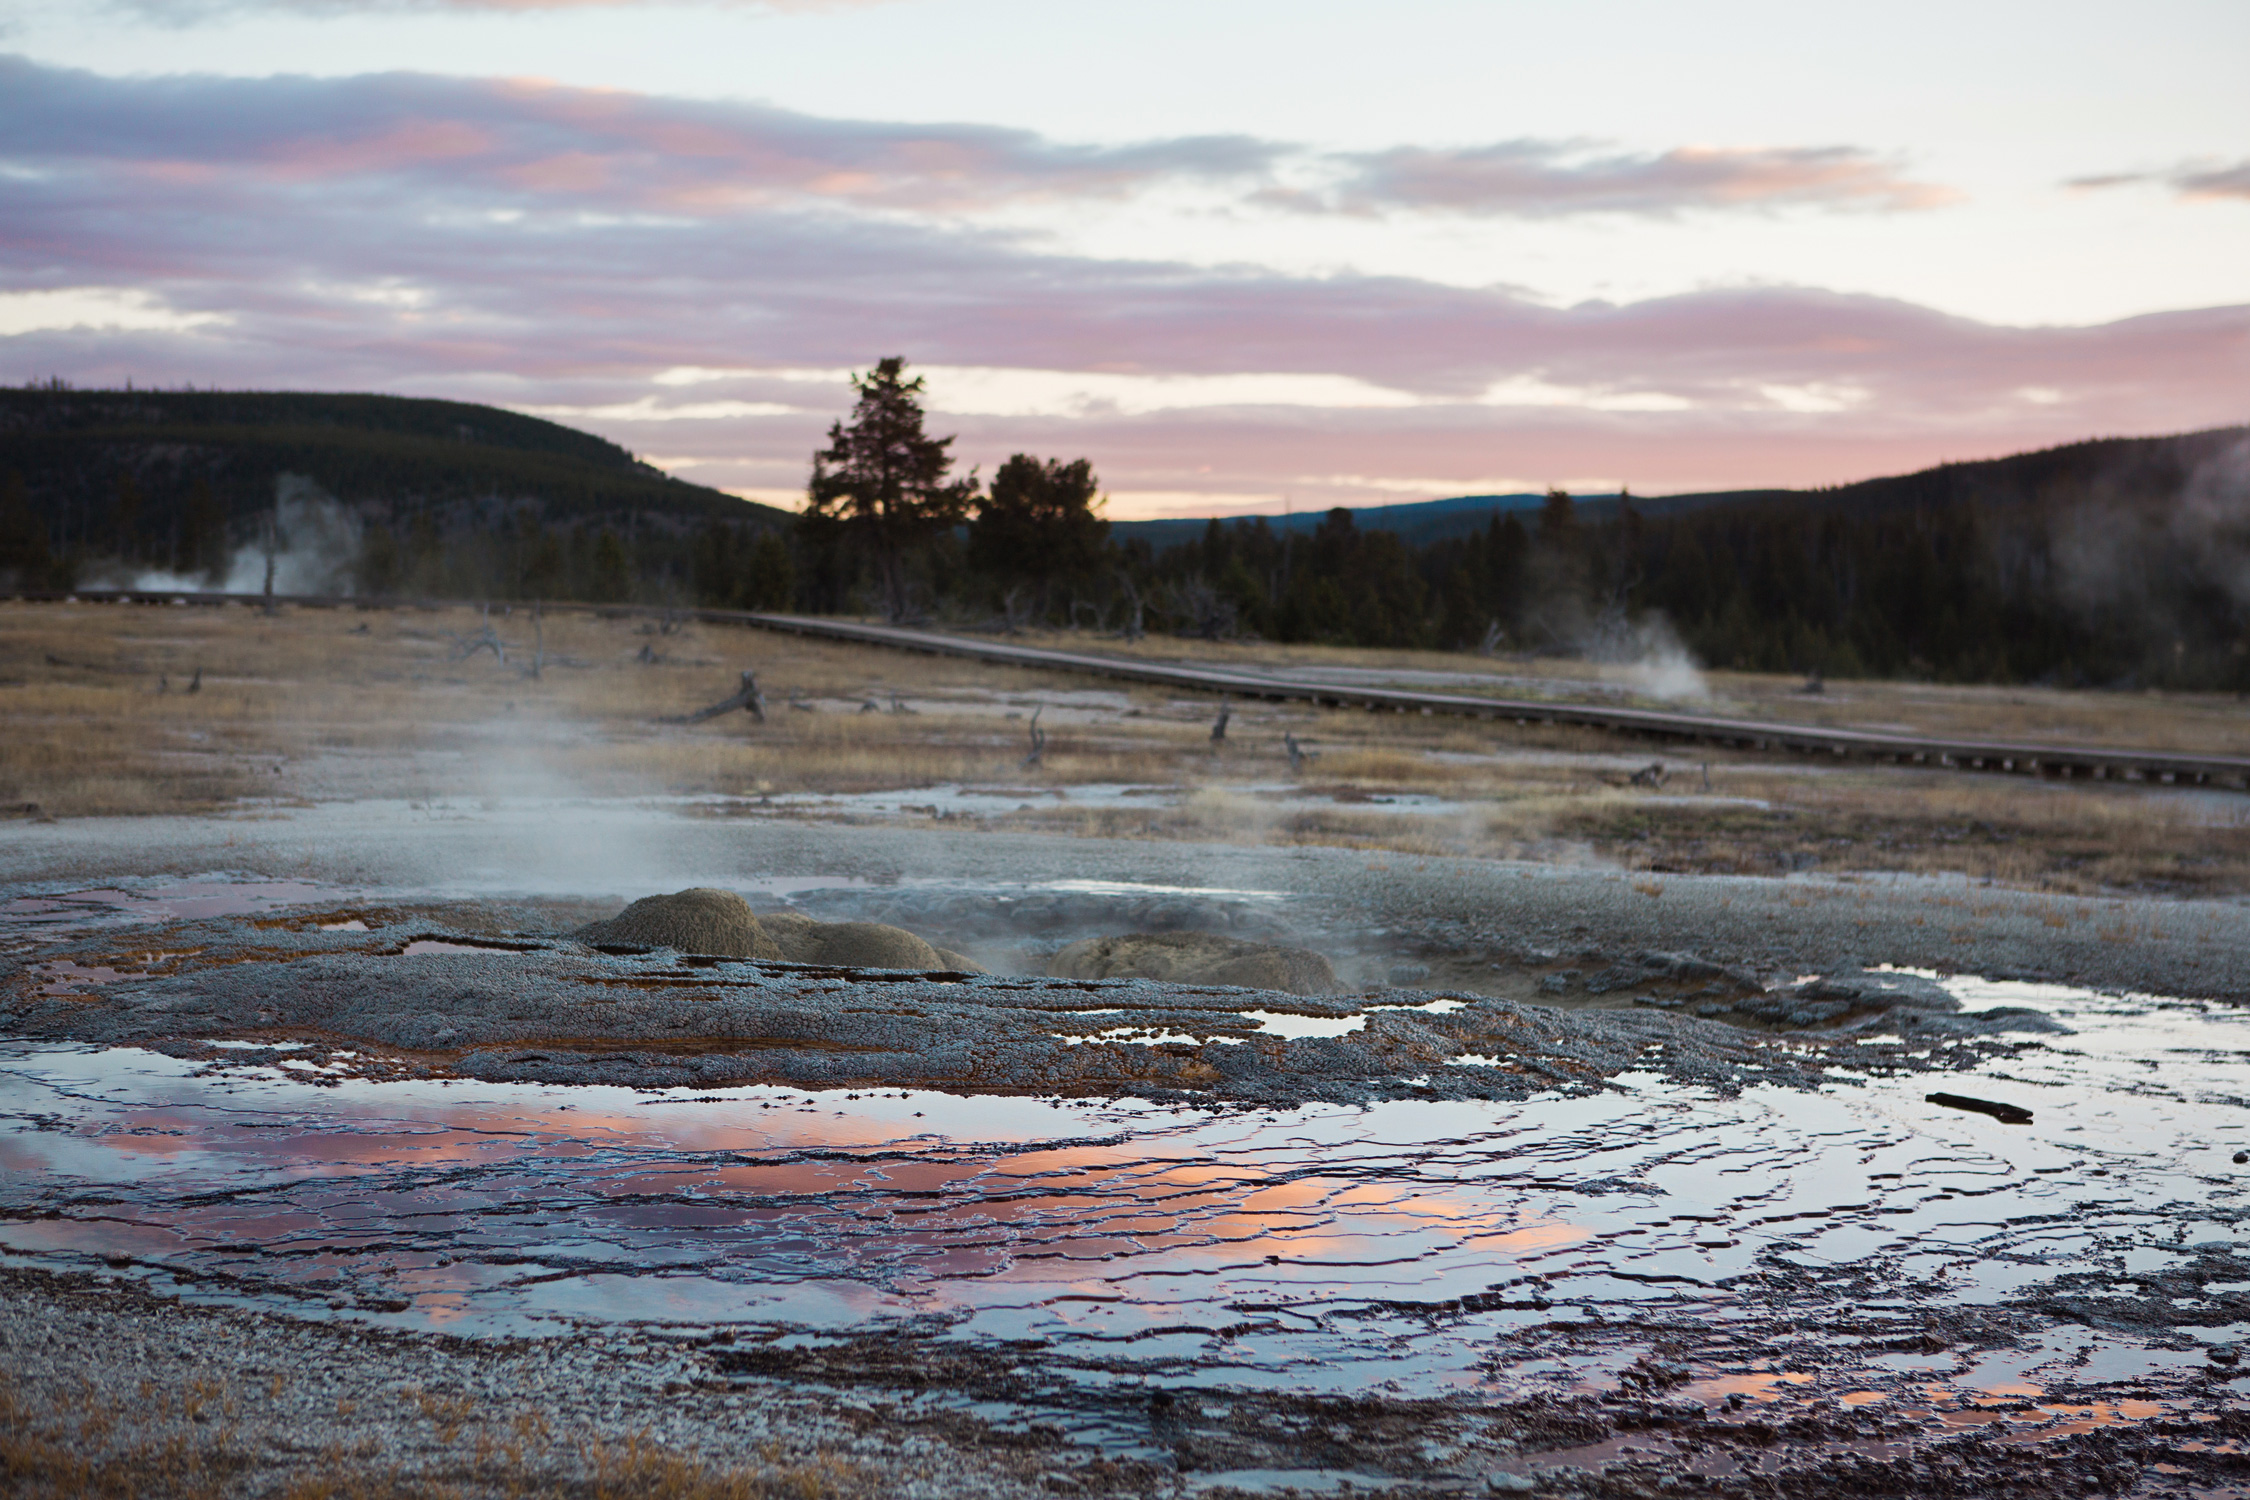 CindyGiovagnoli_road_trip_Yellowstone_National_Park_Montana_Wyoming_hot_springs_geyser_Old_Faithful_Grand_Prismatic-016.jpg